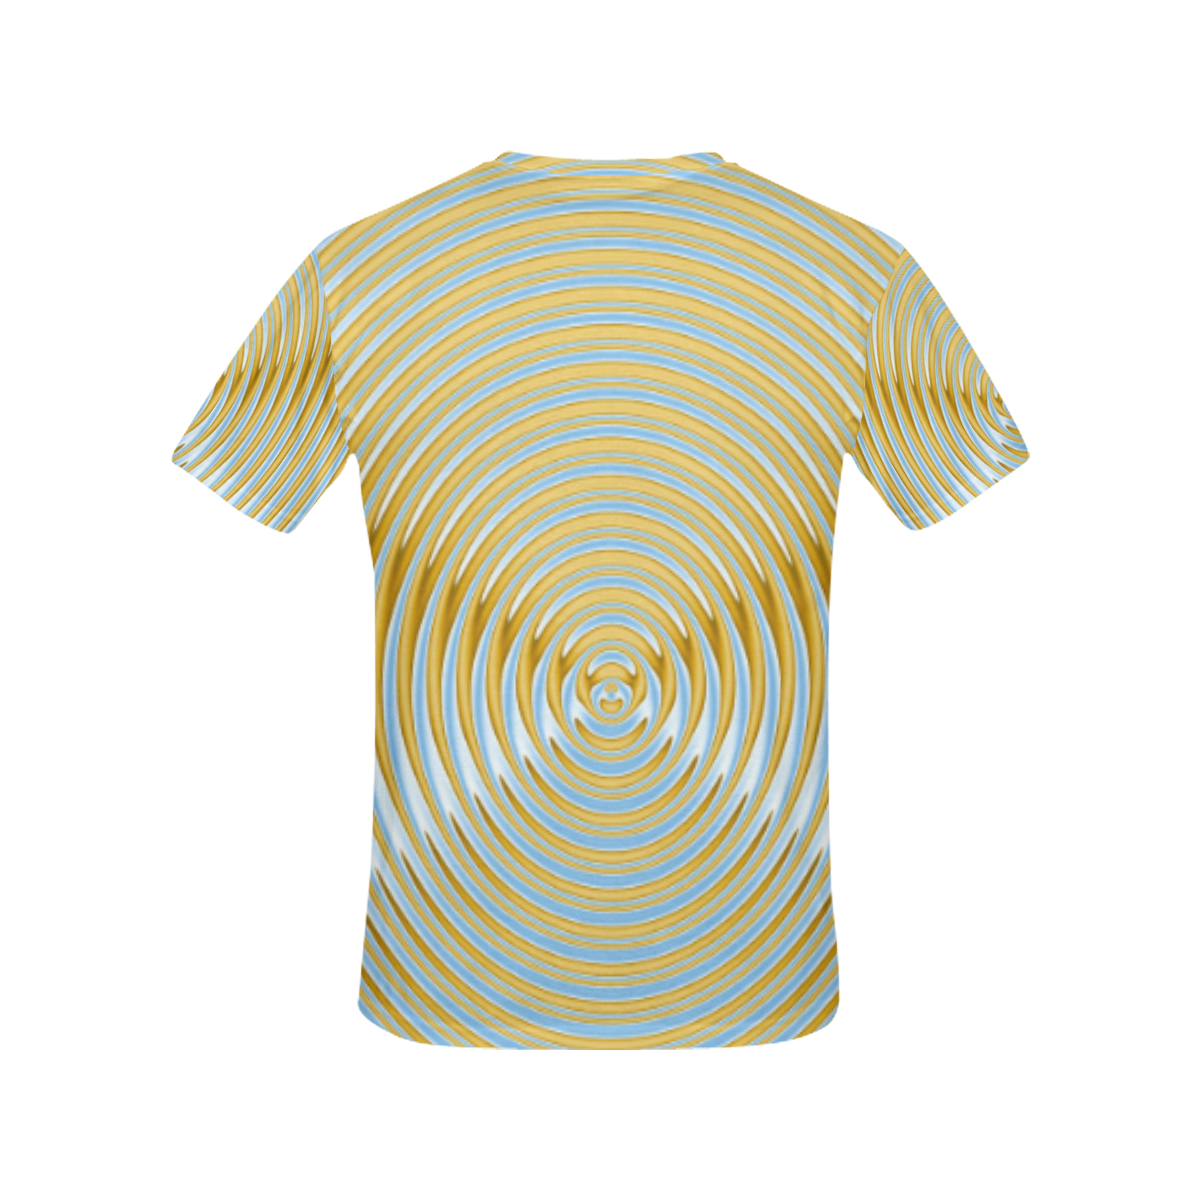 Gold Blue Rings All Over Print T-Shirt for Women (USA Size) (Model T40)